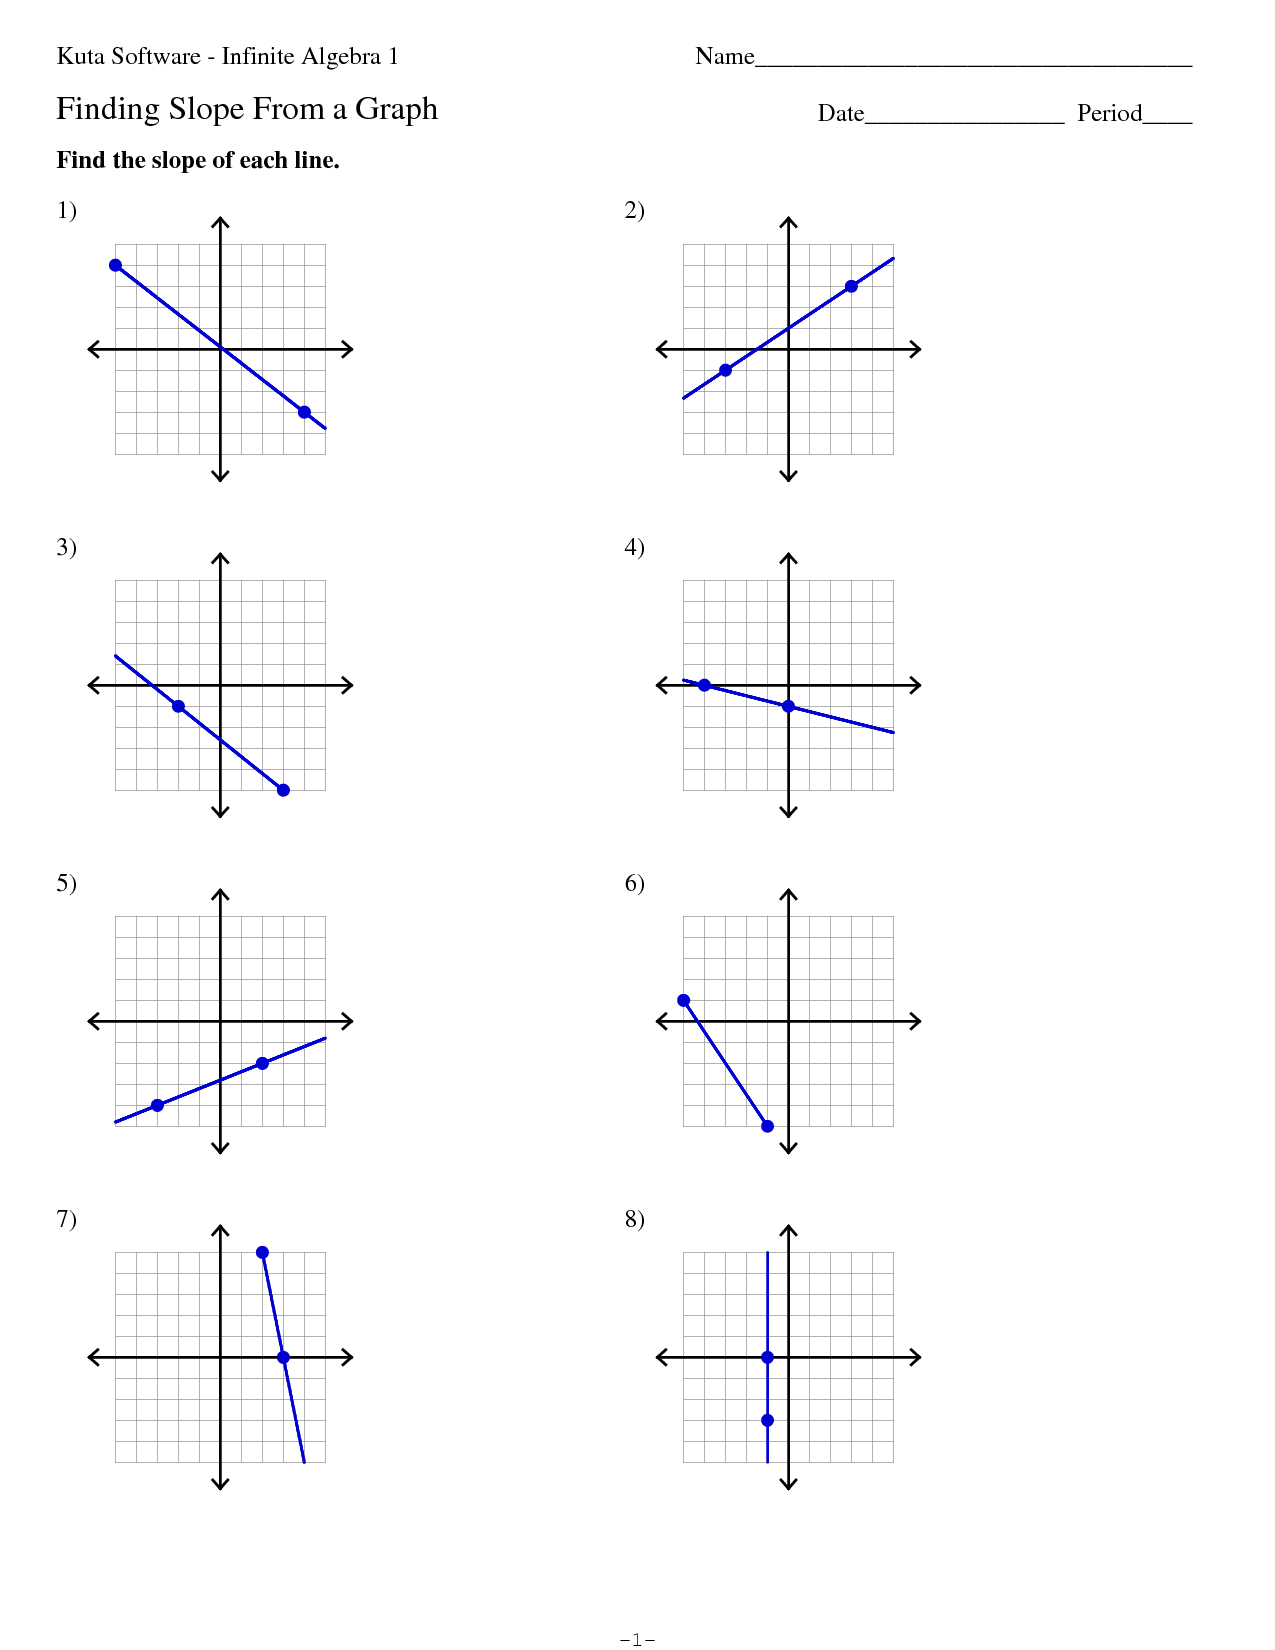 32 Kuta Software Infinite Algebra 1 Graphing Lines Worksheet Answers Worksheet Resource Plans